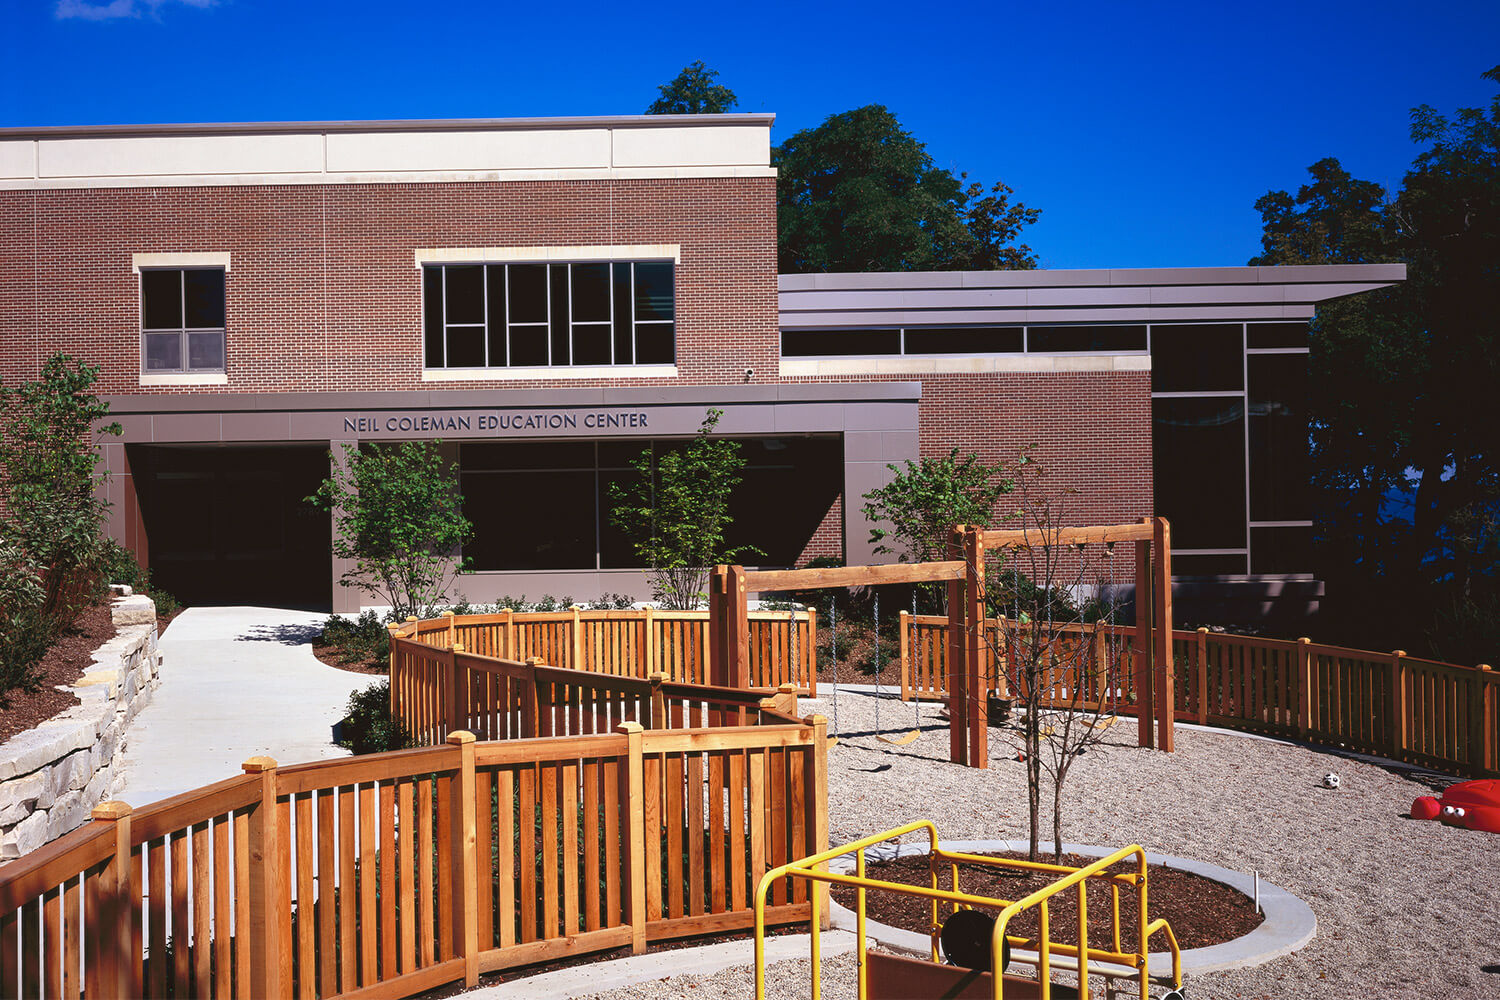 Neil Coleman Education Center B'nai Torah exterior